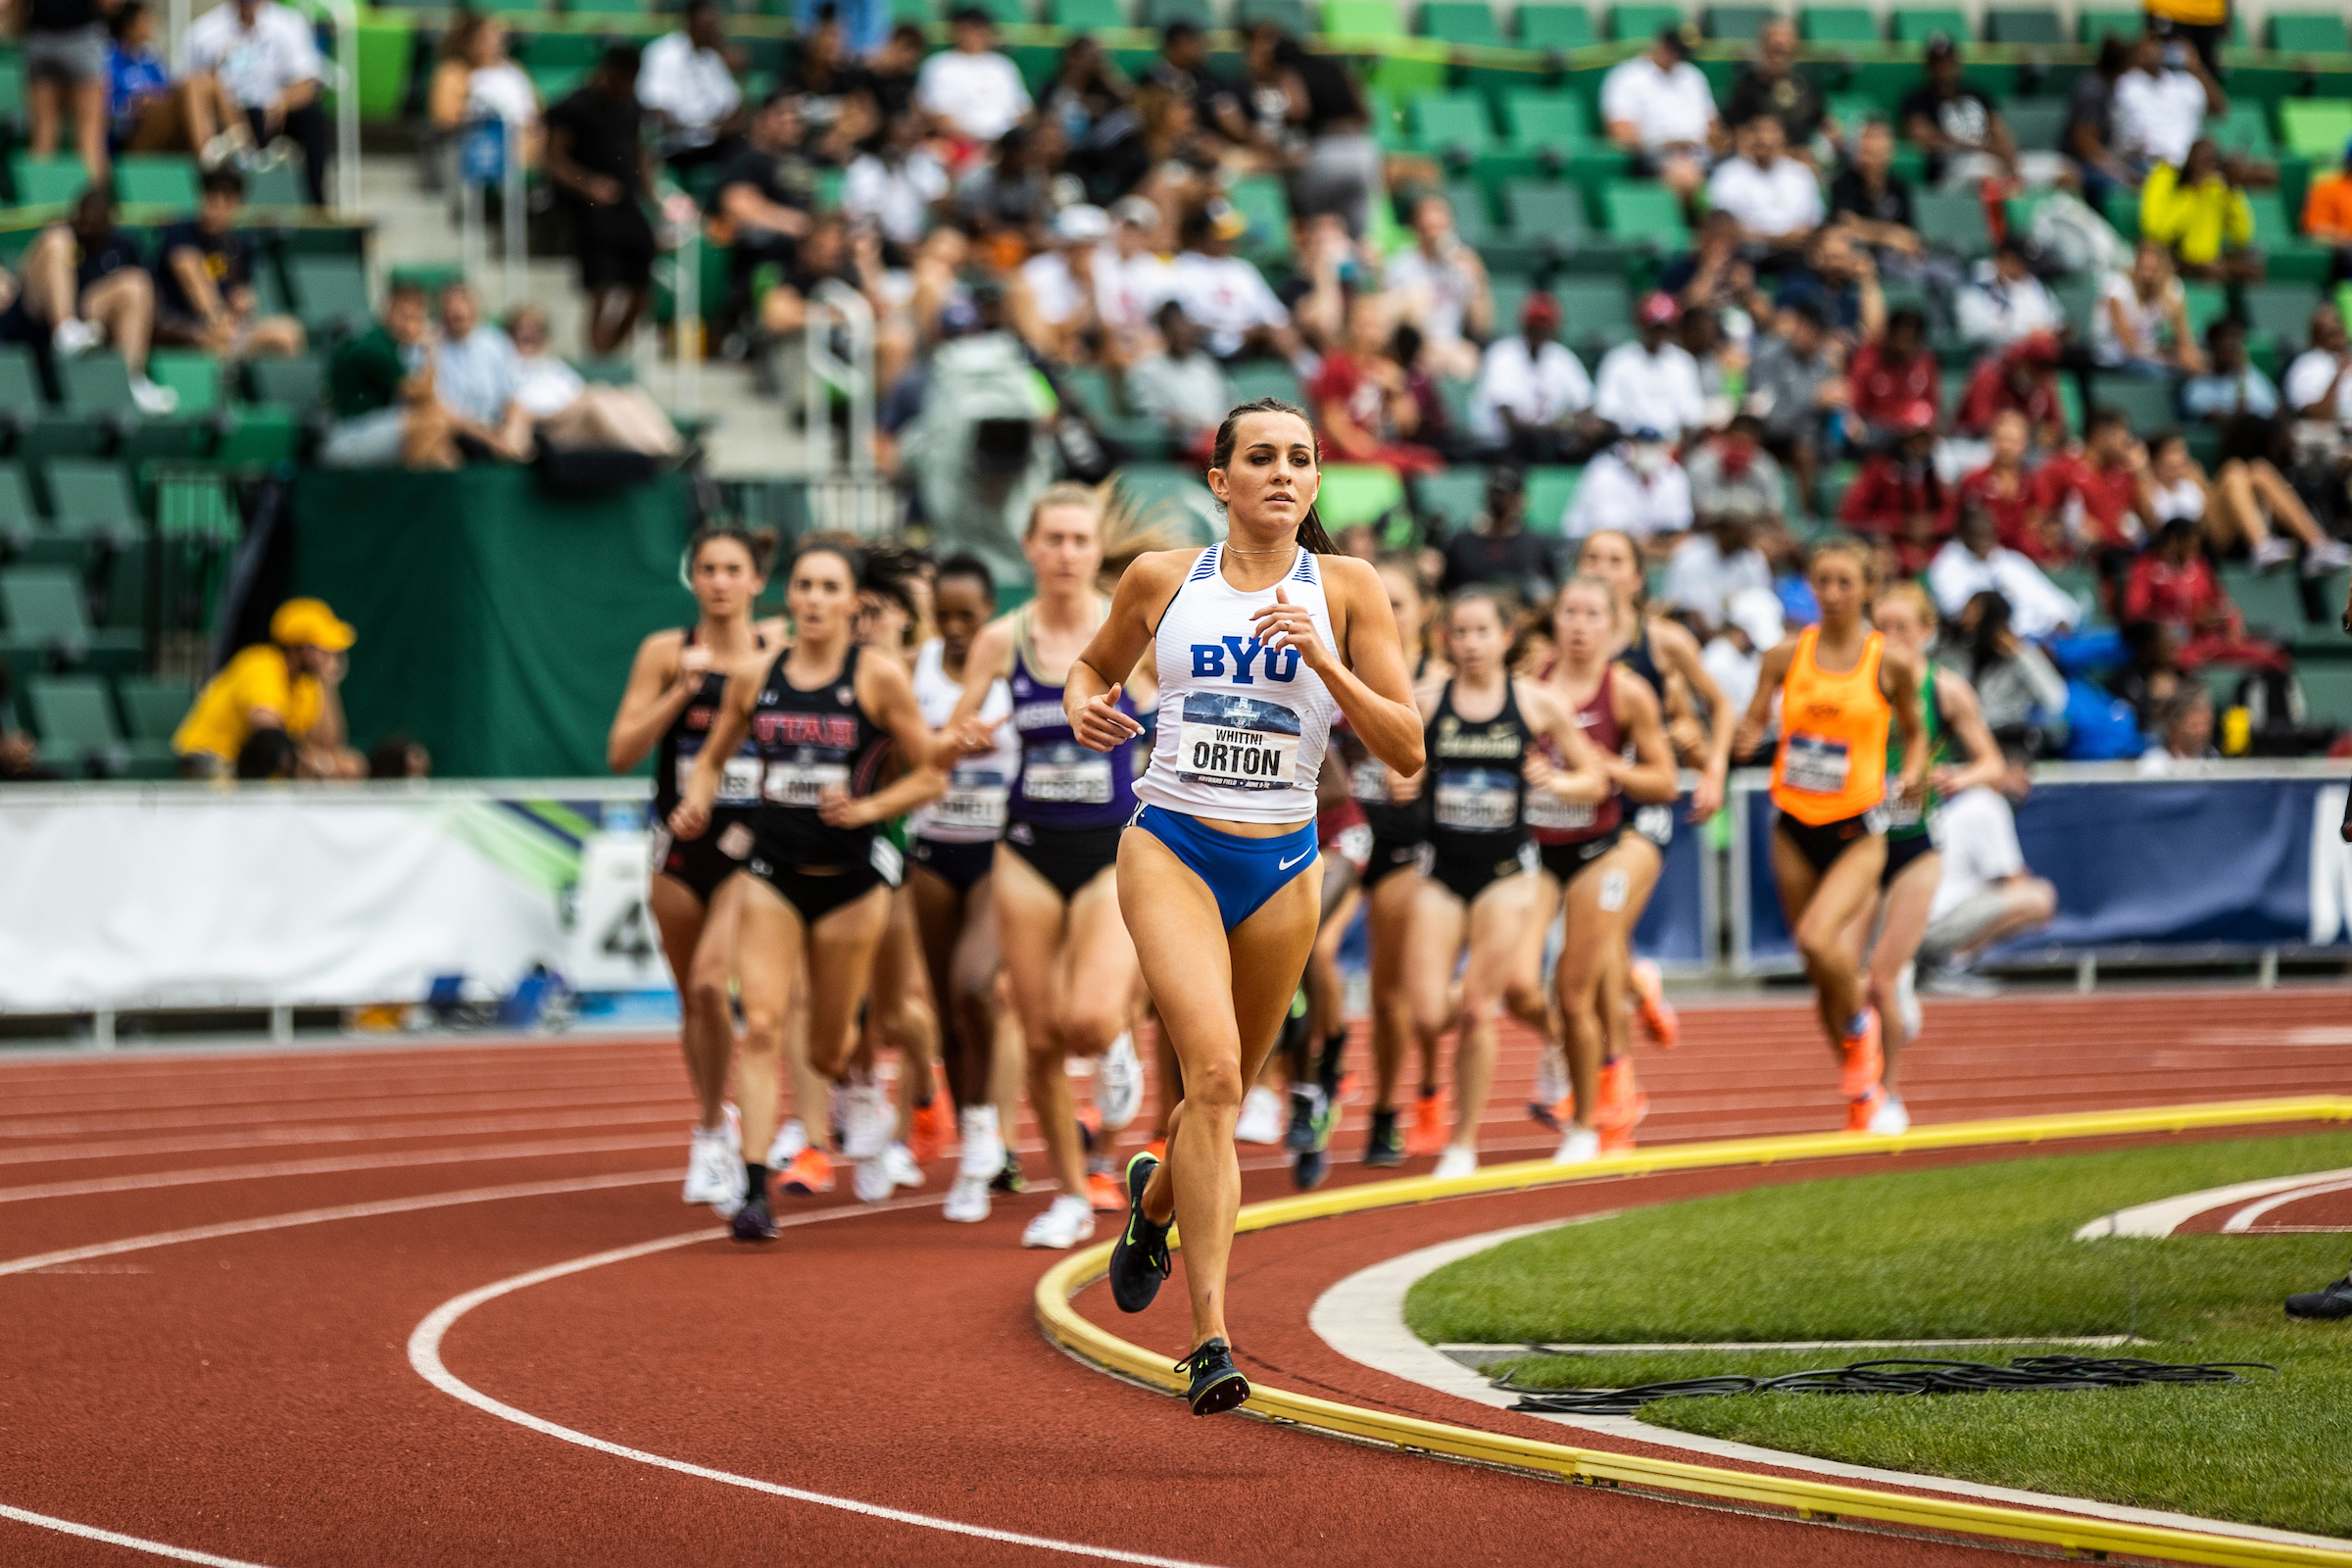 BYU's Whittni Orton ran the 14th fastest time in the  semifinals of the 1,500-meter race at the U.S. Olympic Track and Field Trials.